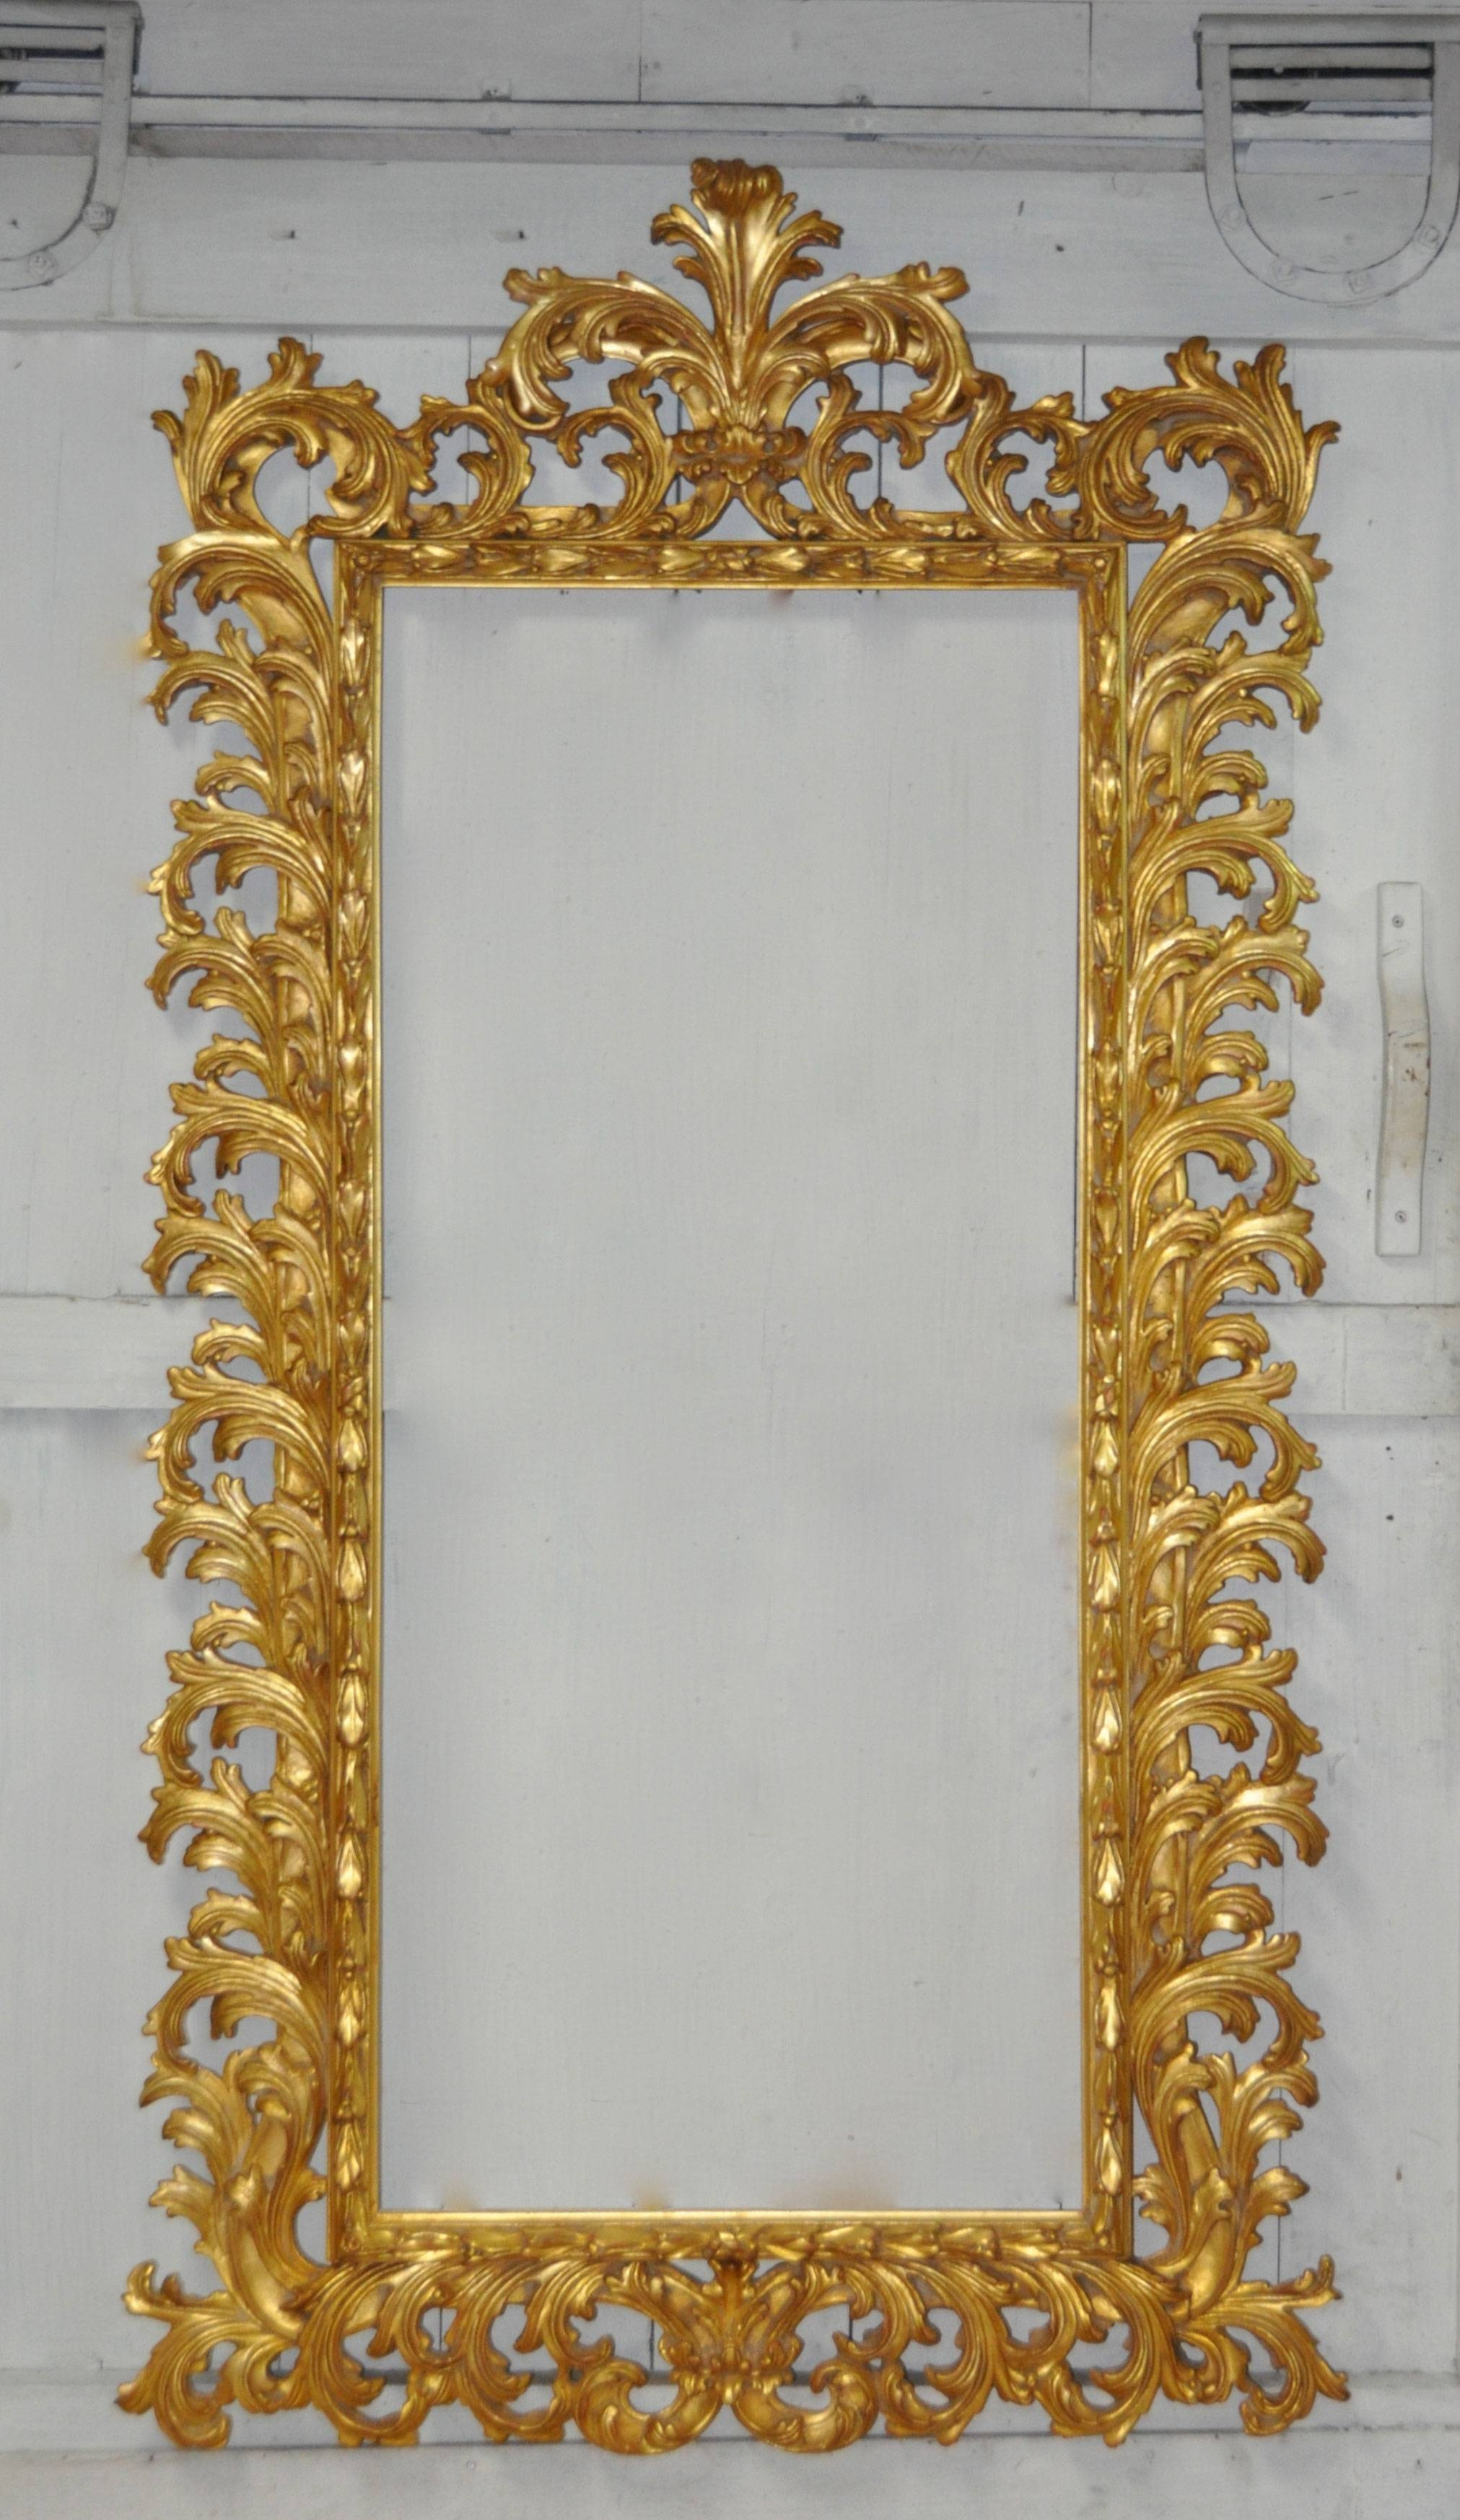 Grand Baroque Ii Mirror | Carvers' Guild With Baroque Gold Mirrors (View 7 of 15)